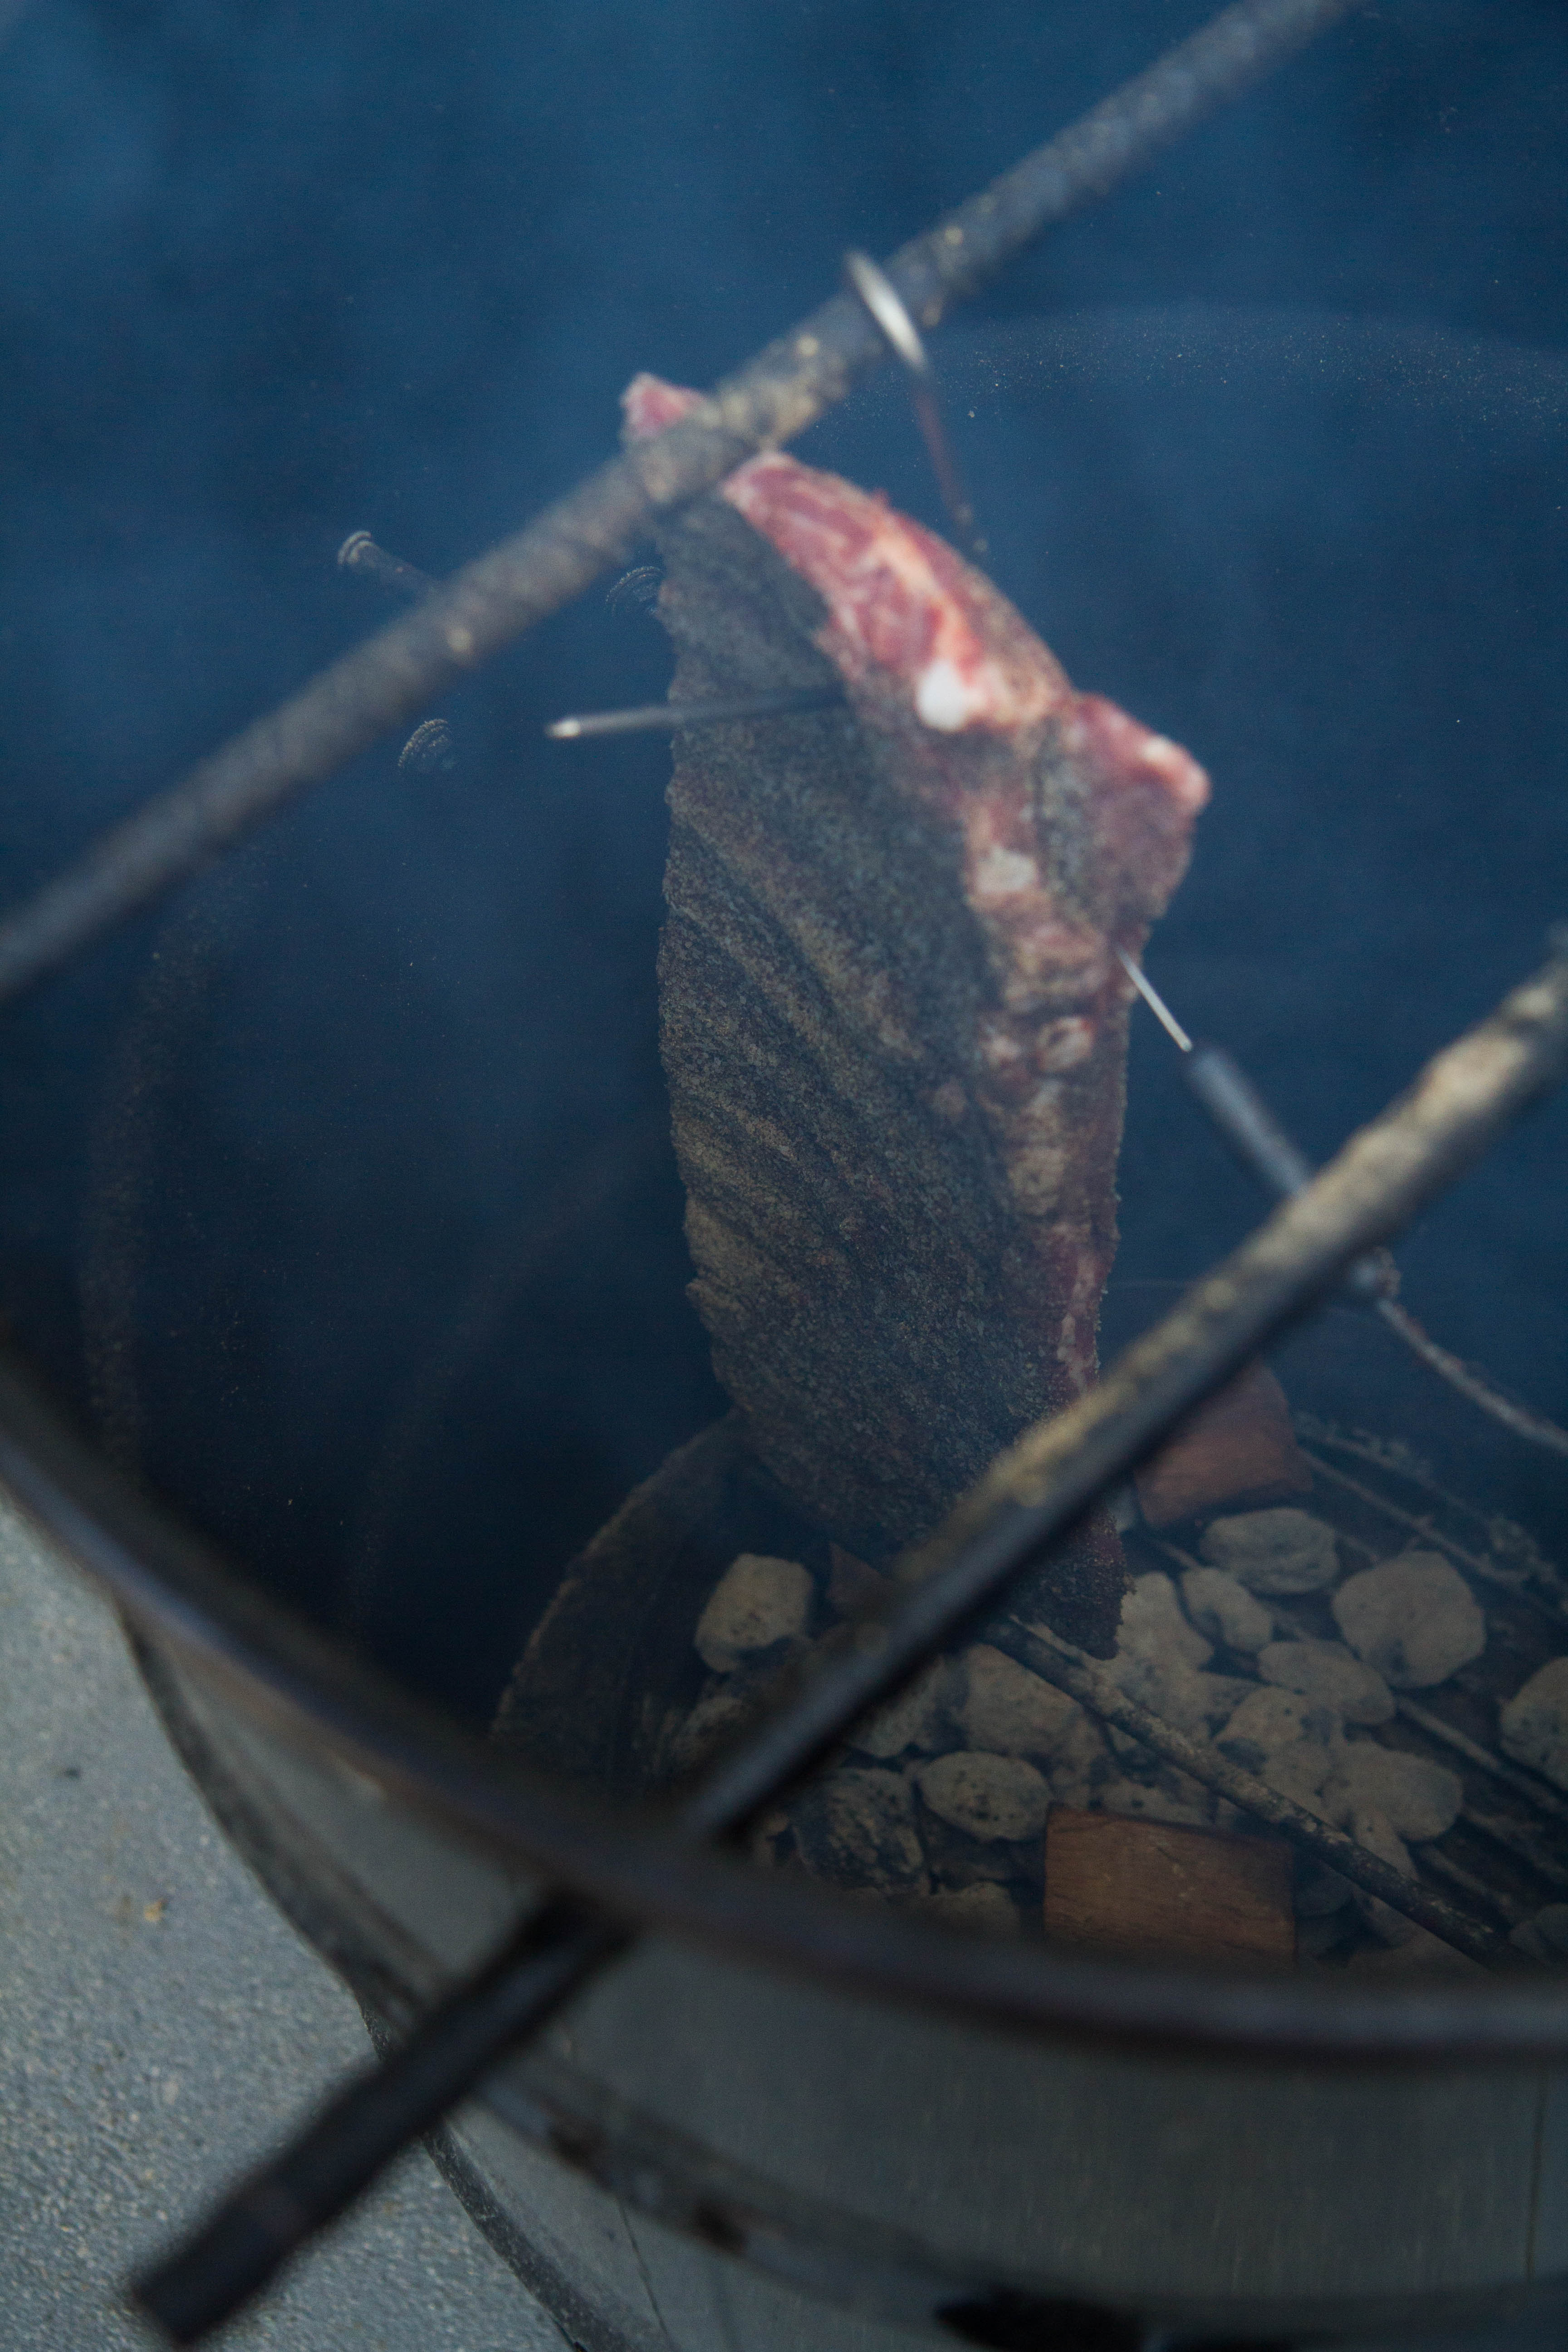 Ribs in a BBQ cooker